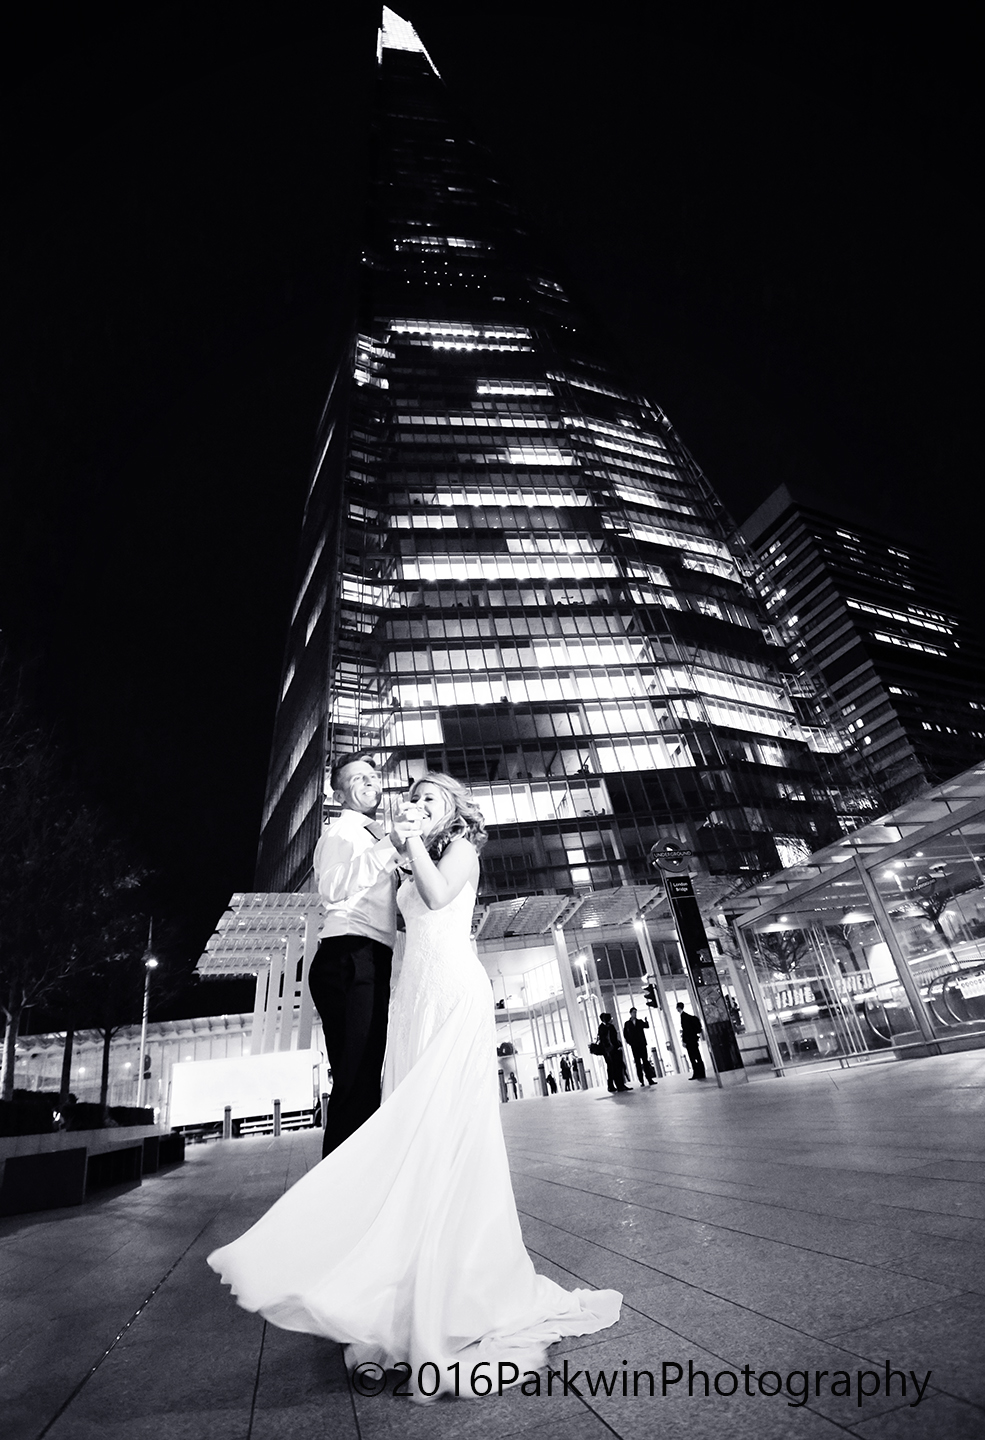 Bride and Groom dancing outside The Shard